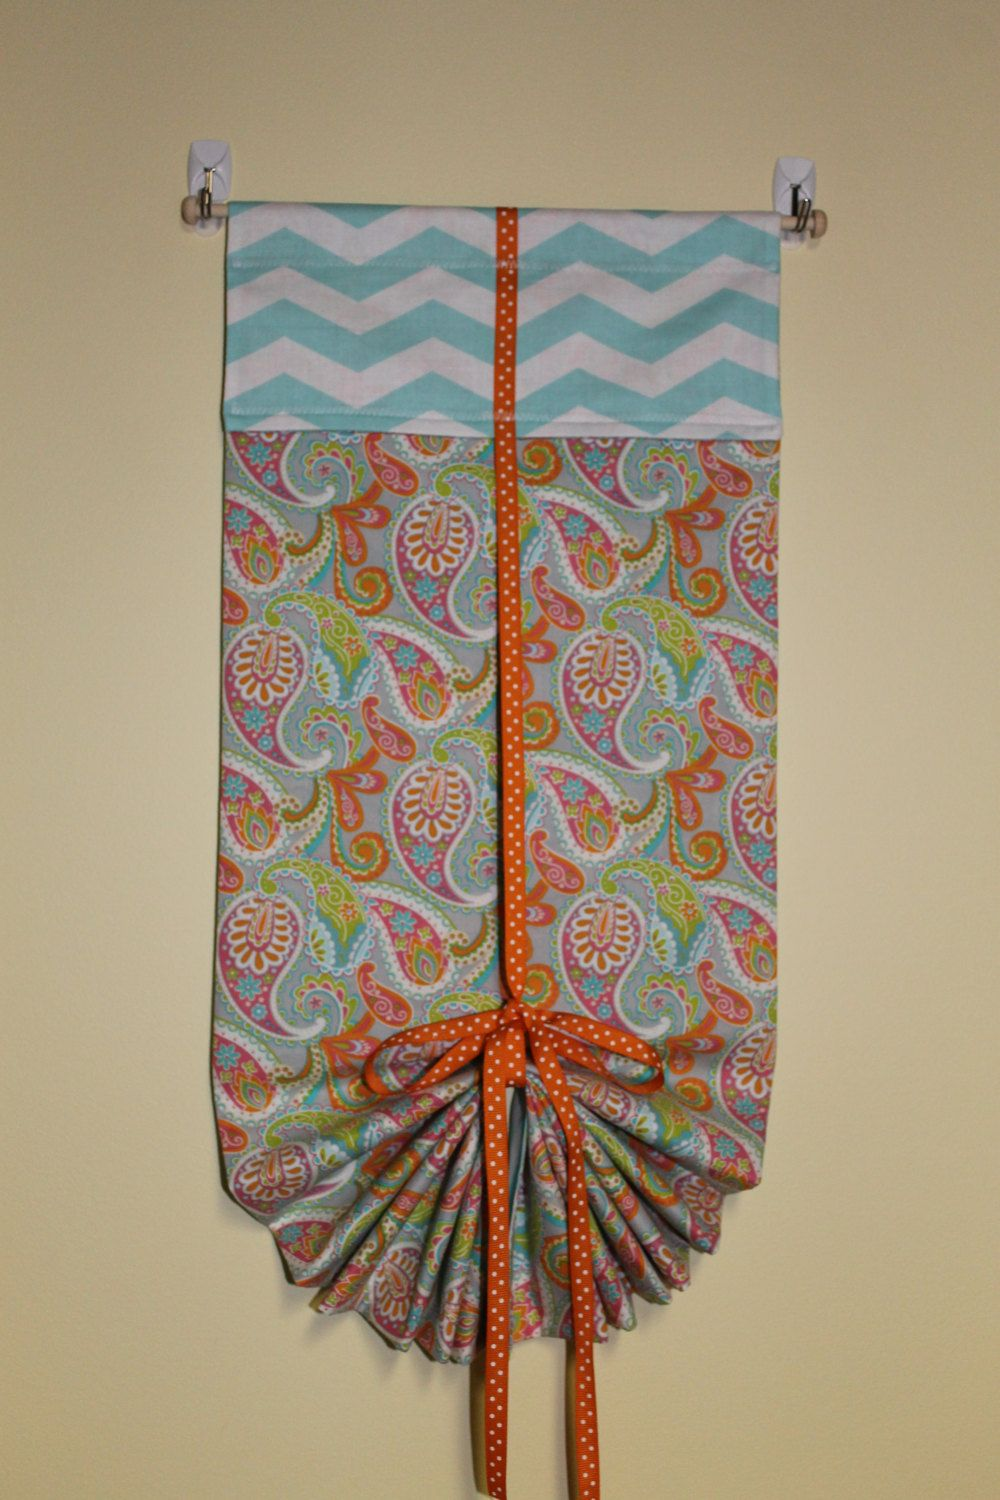 Classroom Door Safety Curtain Paisley Turquoise Chevron By Wittywhimsicals On Etsy Teacher Classroom Decorations Classroom Curtains Classroom Door